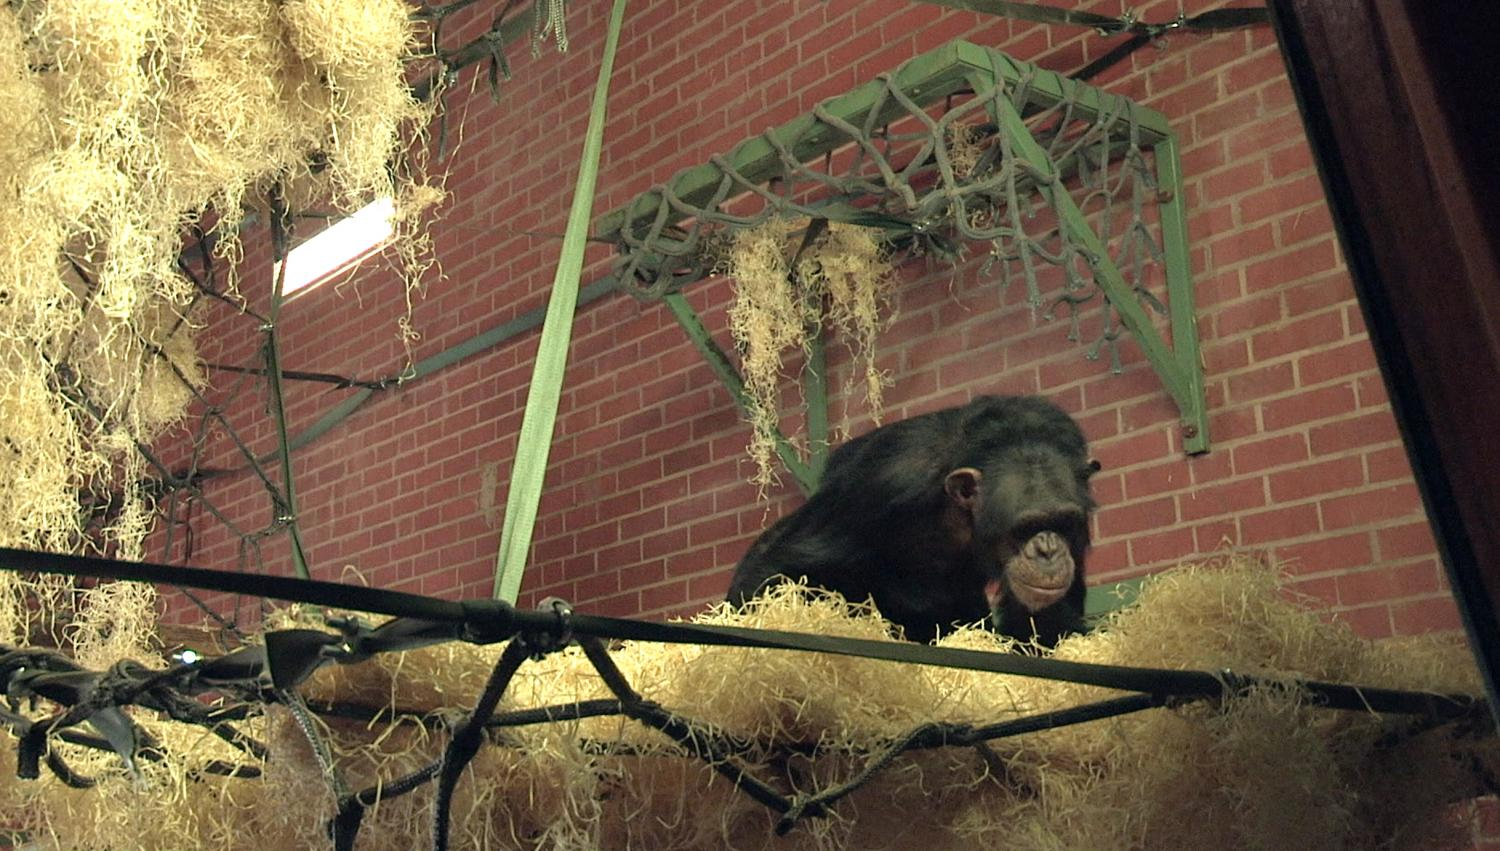 enclosure redesign translates wild chimpanzee research to zoo settings